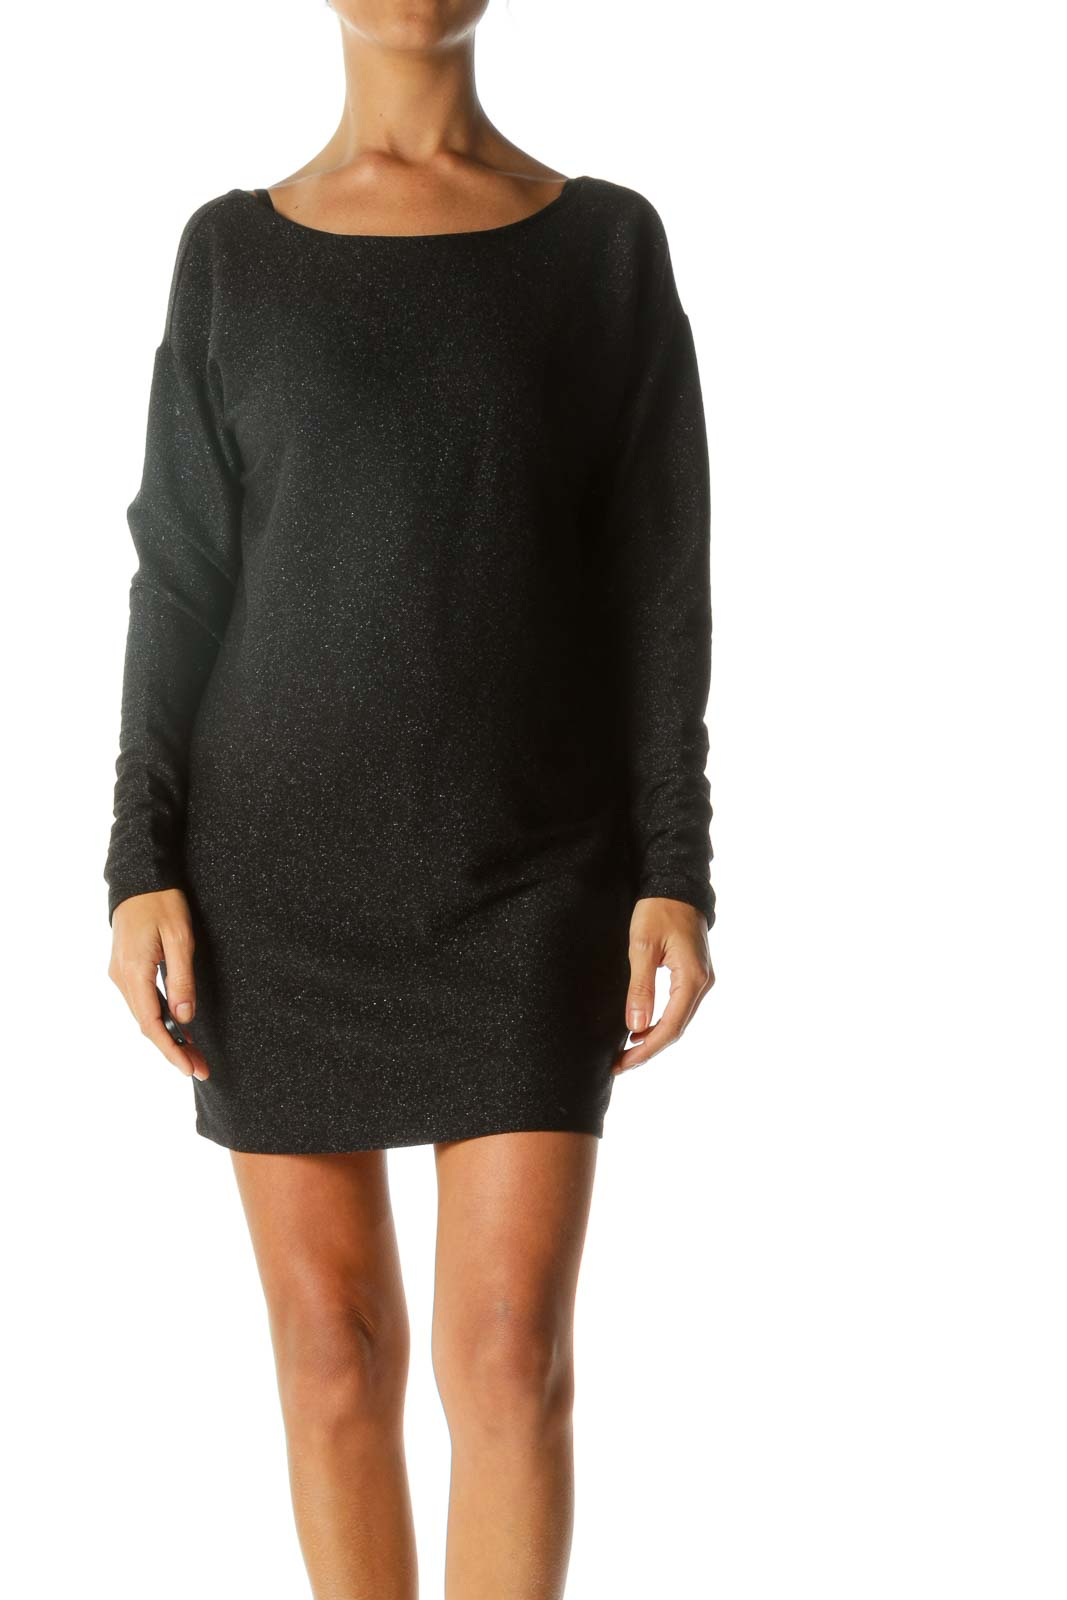 Black Shiny Metallic Back Scoop Long Sleeve Textured Cocktail Dress Front